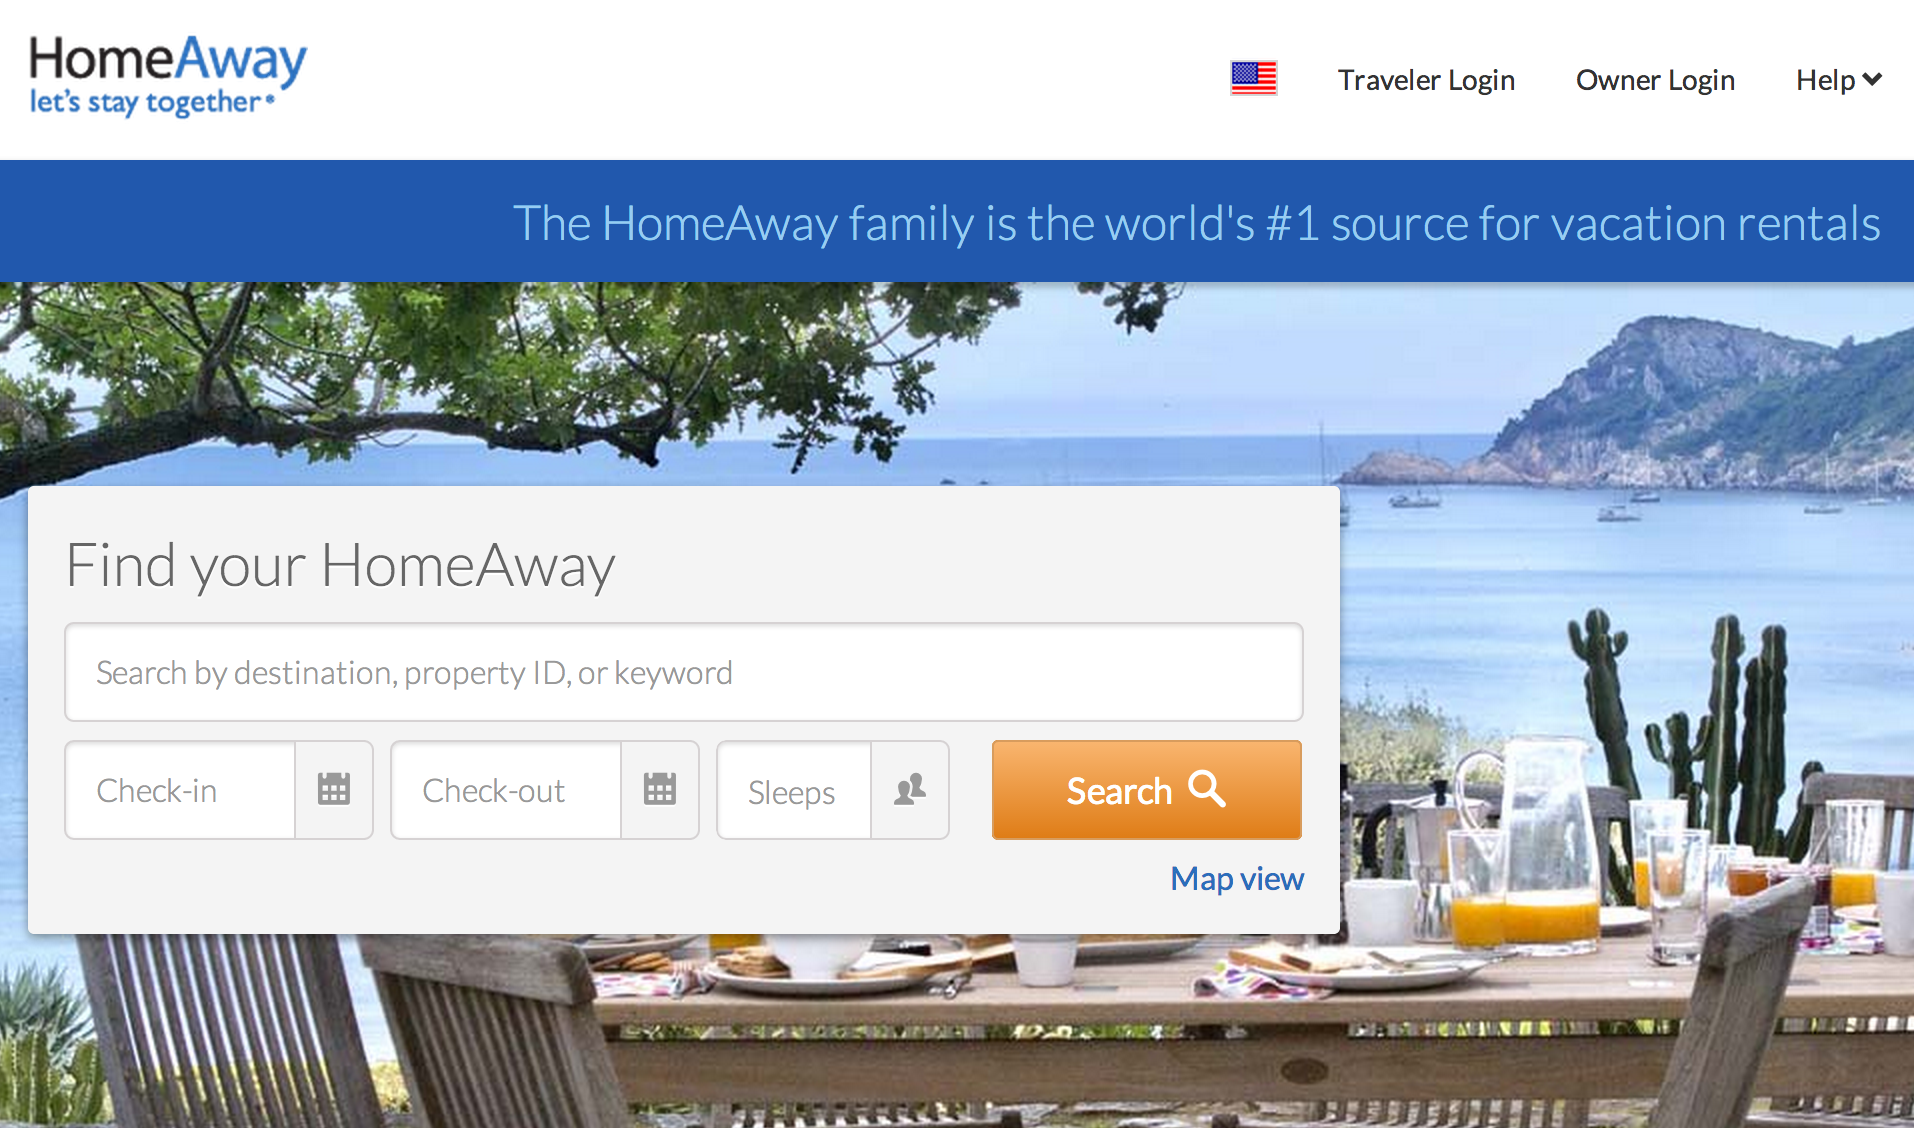 HomeAway expands with Expedia, listing over 100k home